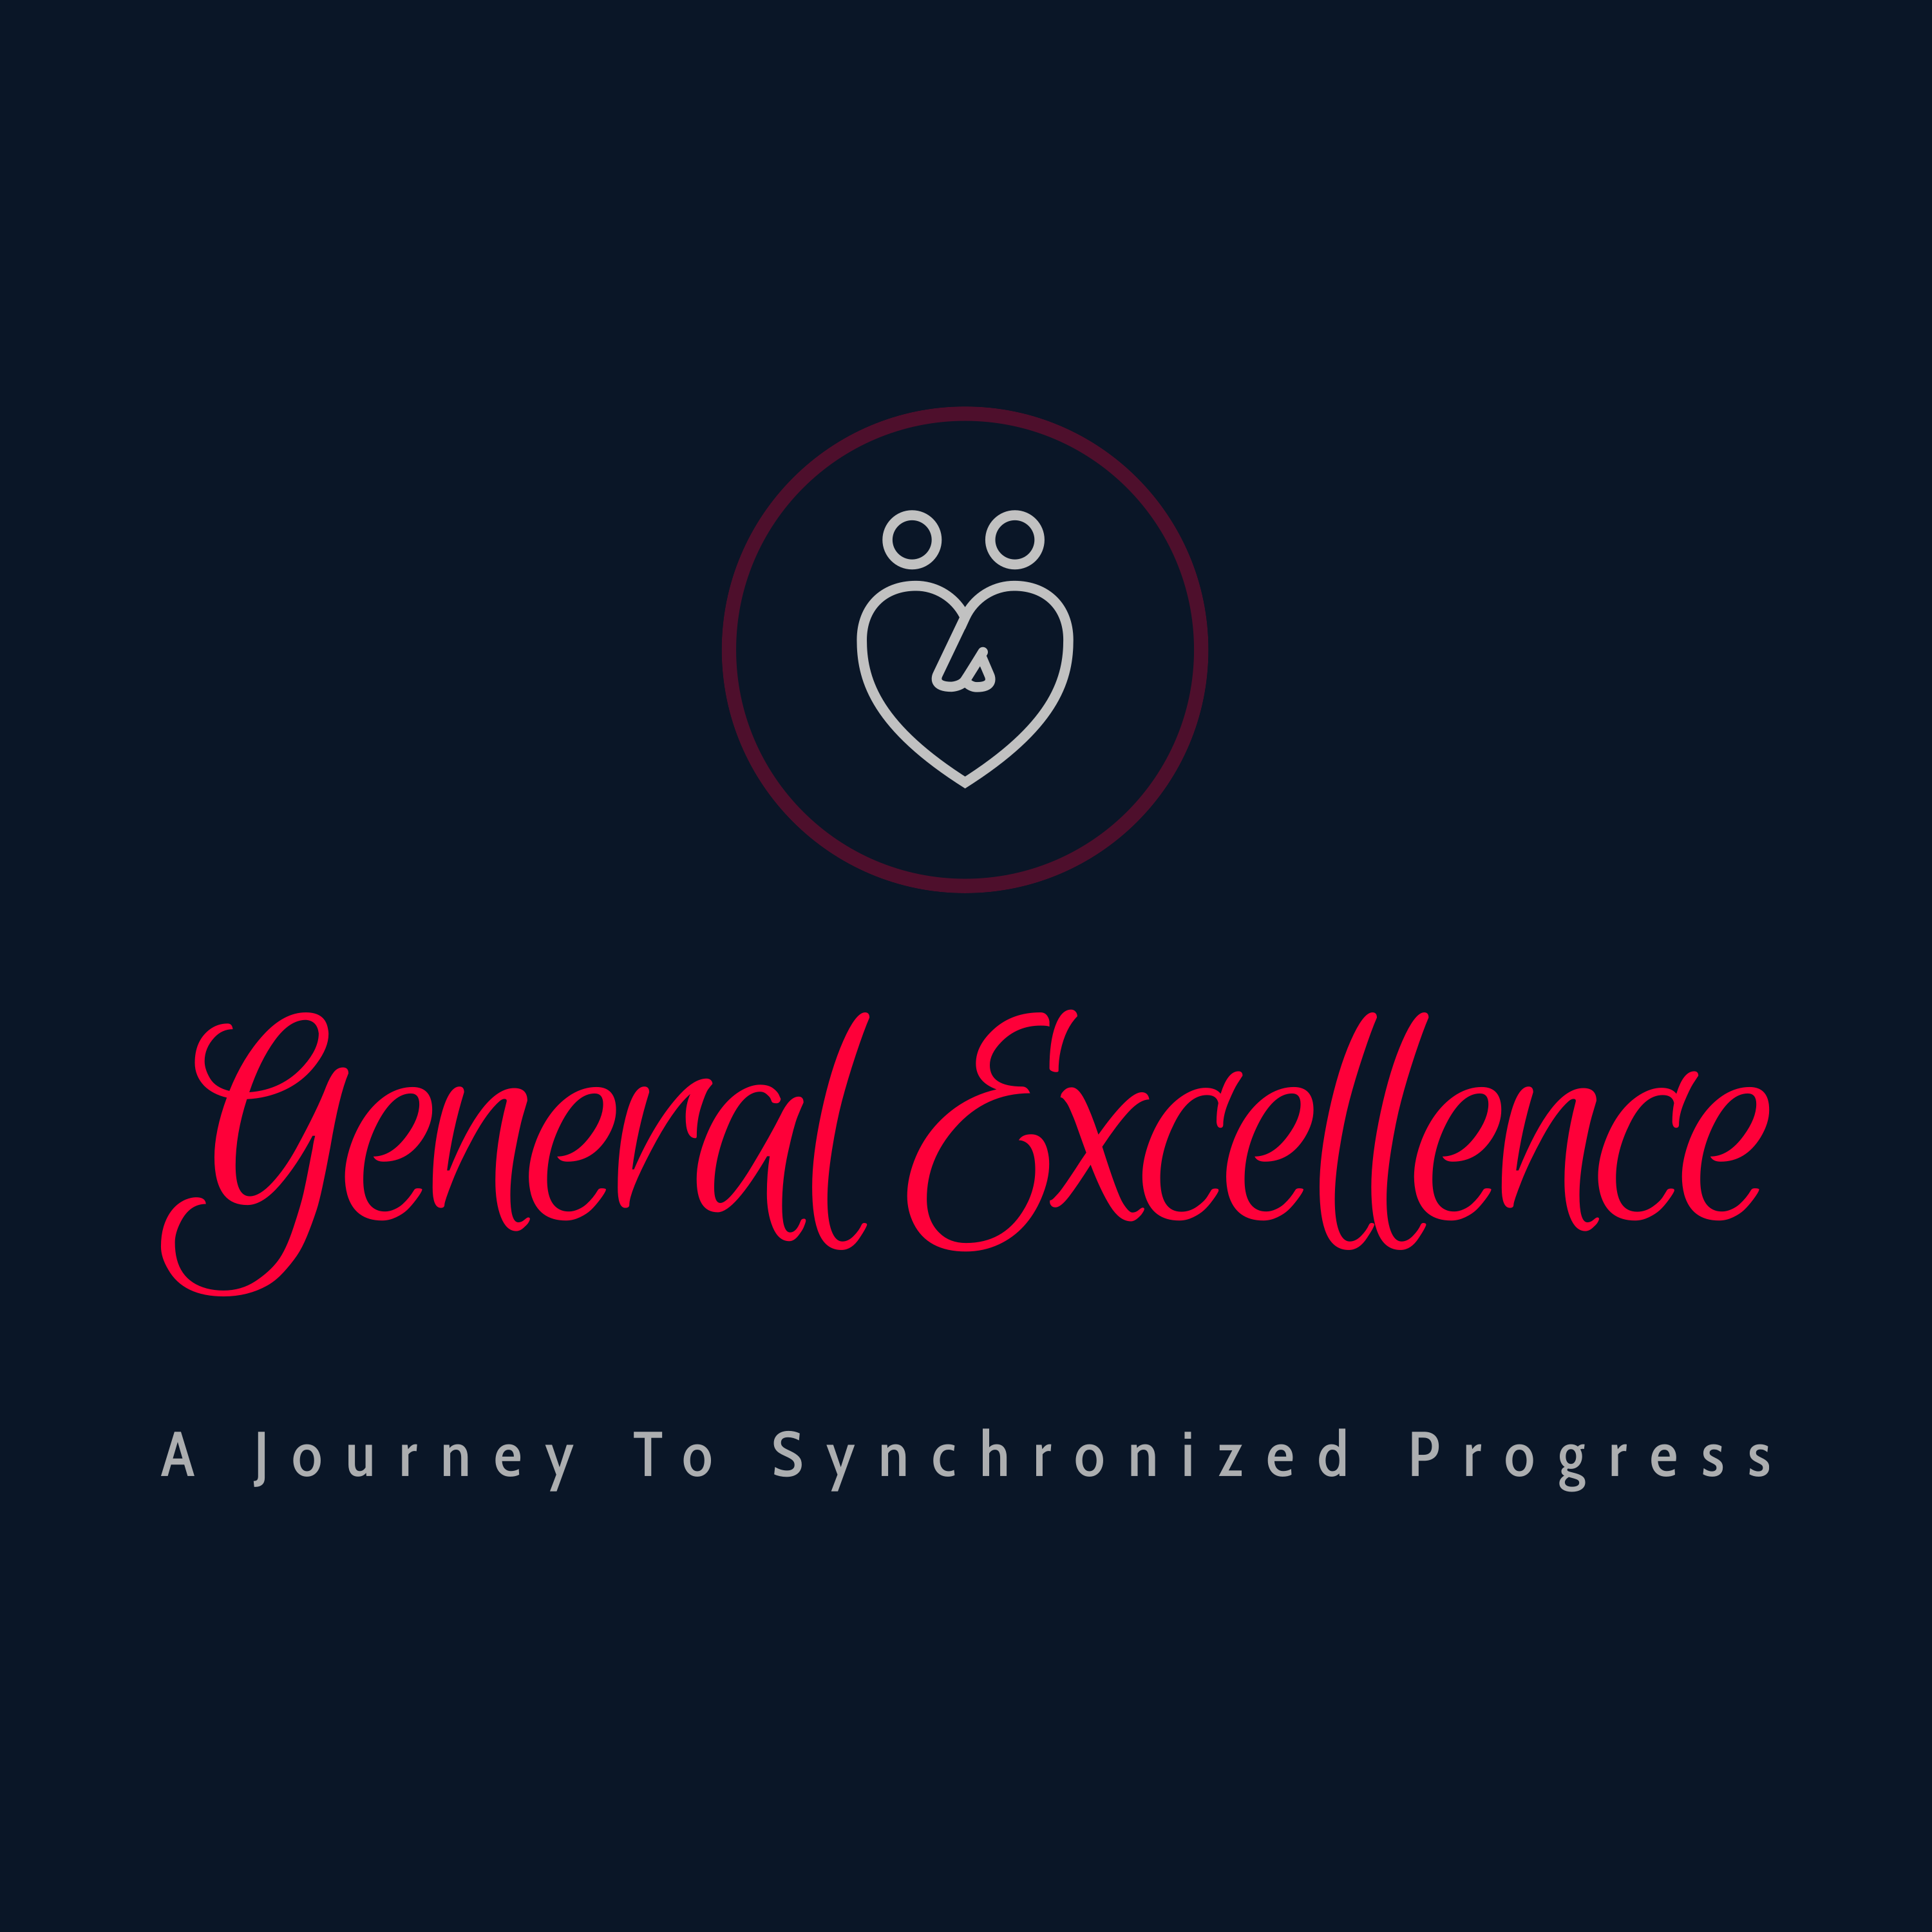 General Excellence